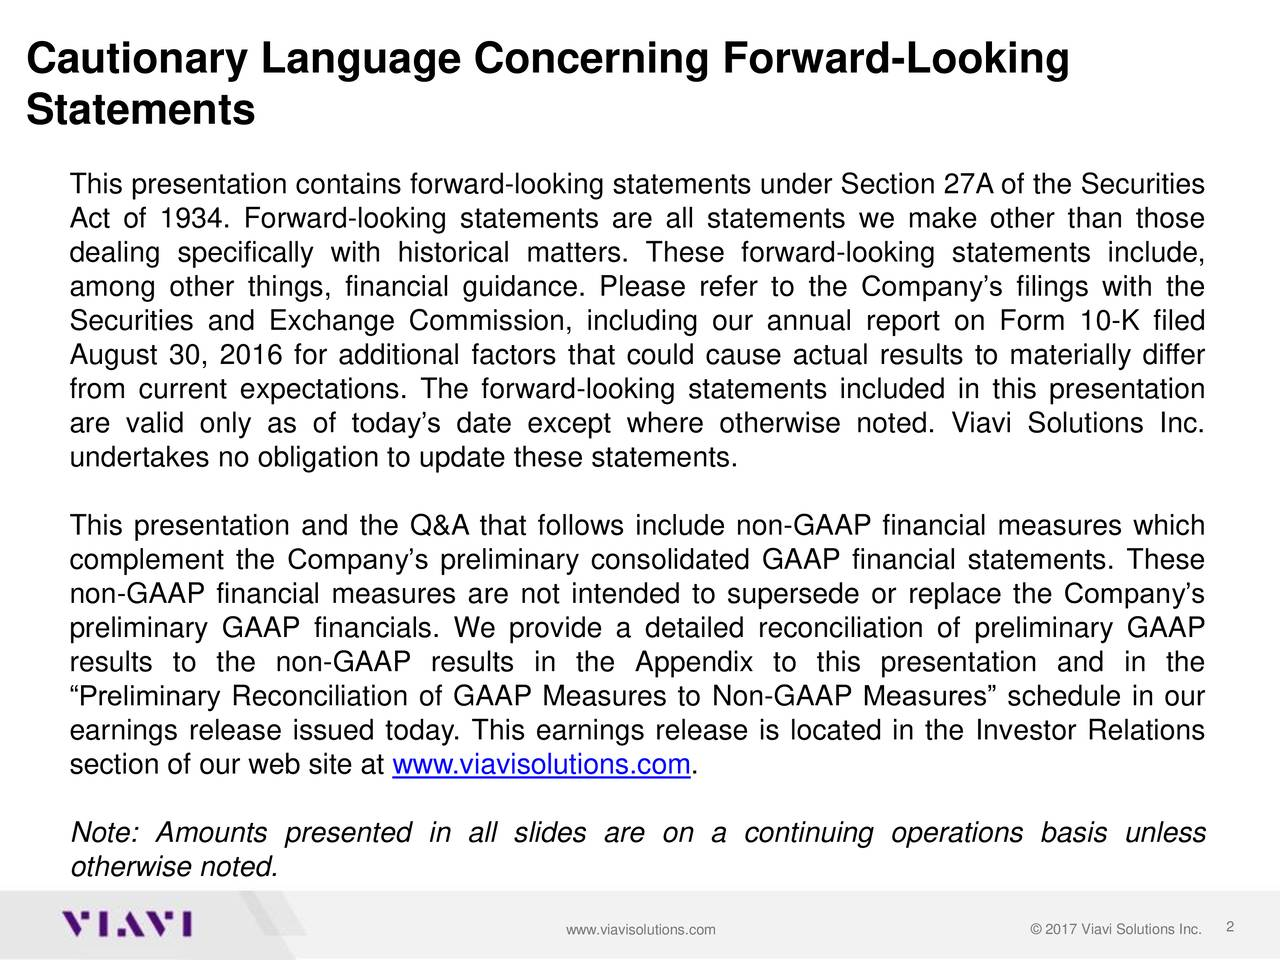 Statements This presentation contains forward-looking statements under Section 27A of the Securities Act of 1934. Forward-looking statements are all statements we make other than those dealing specifically with historical matters. These forward-looking statements include, among other things, financial guidance. Please refer to the Companys filings with the Securities and Exchange Commission, including our annual report on Form 10-K filed August 30, 2016 for additional factors that could cause actual results to materially differ from current expectations. The forward-looking statements included in this presentation are valid only as of todays date except where otherwise noted. Viavi Solutions Inc. undertakes no obligation to update these statements. This presentation and the Q&A that follows include non-GAAP financial measures which complement the Companys preliminary consolidated GAAP financial statements. These non-GAAP financial measures are not intended to supersede or replace the Companys preliminary GAAP financials. We provide a detailed reconciliation of preliminary GAAP results to the non-GAAP results in the Appendix to this presentation and in the Preliminary Reconciliation of GAAP Measures to Non-GAAP Measures schedule in our earnings release issued today. This earnings release is located in the Investor Relations section of our web site at www.viavisolutions.com. Note: Amounts presented in all slides are on a continuing operations basis unless otherwise noted. www.viavisolutions.com  2017 Viavi Solutions Inc.